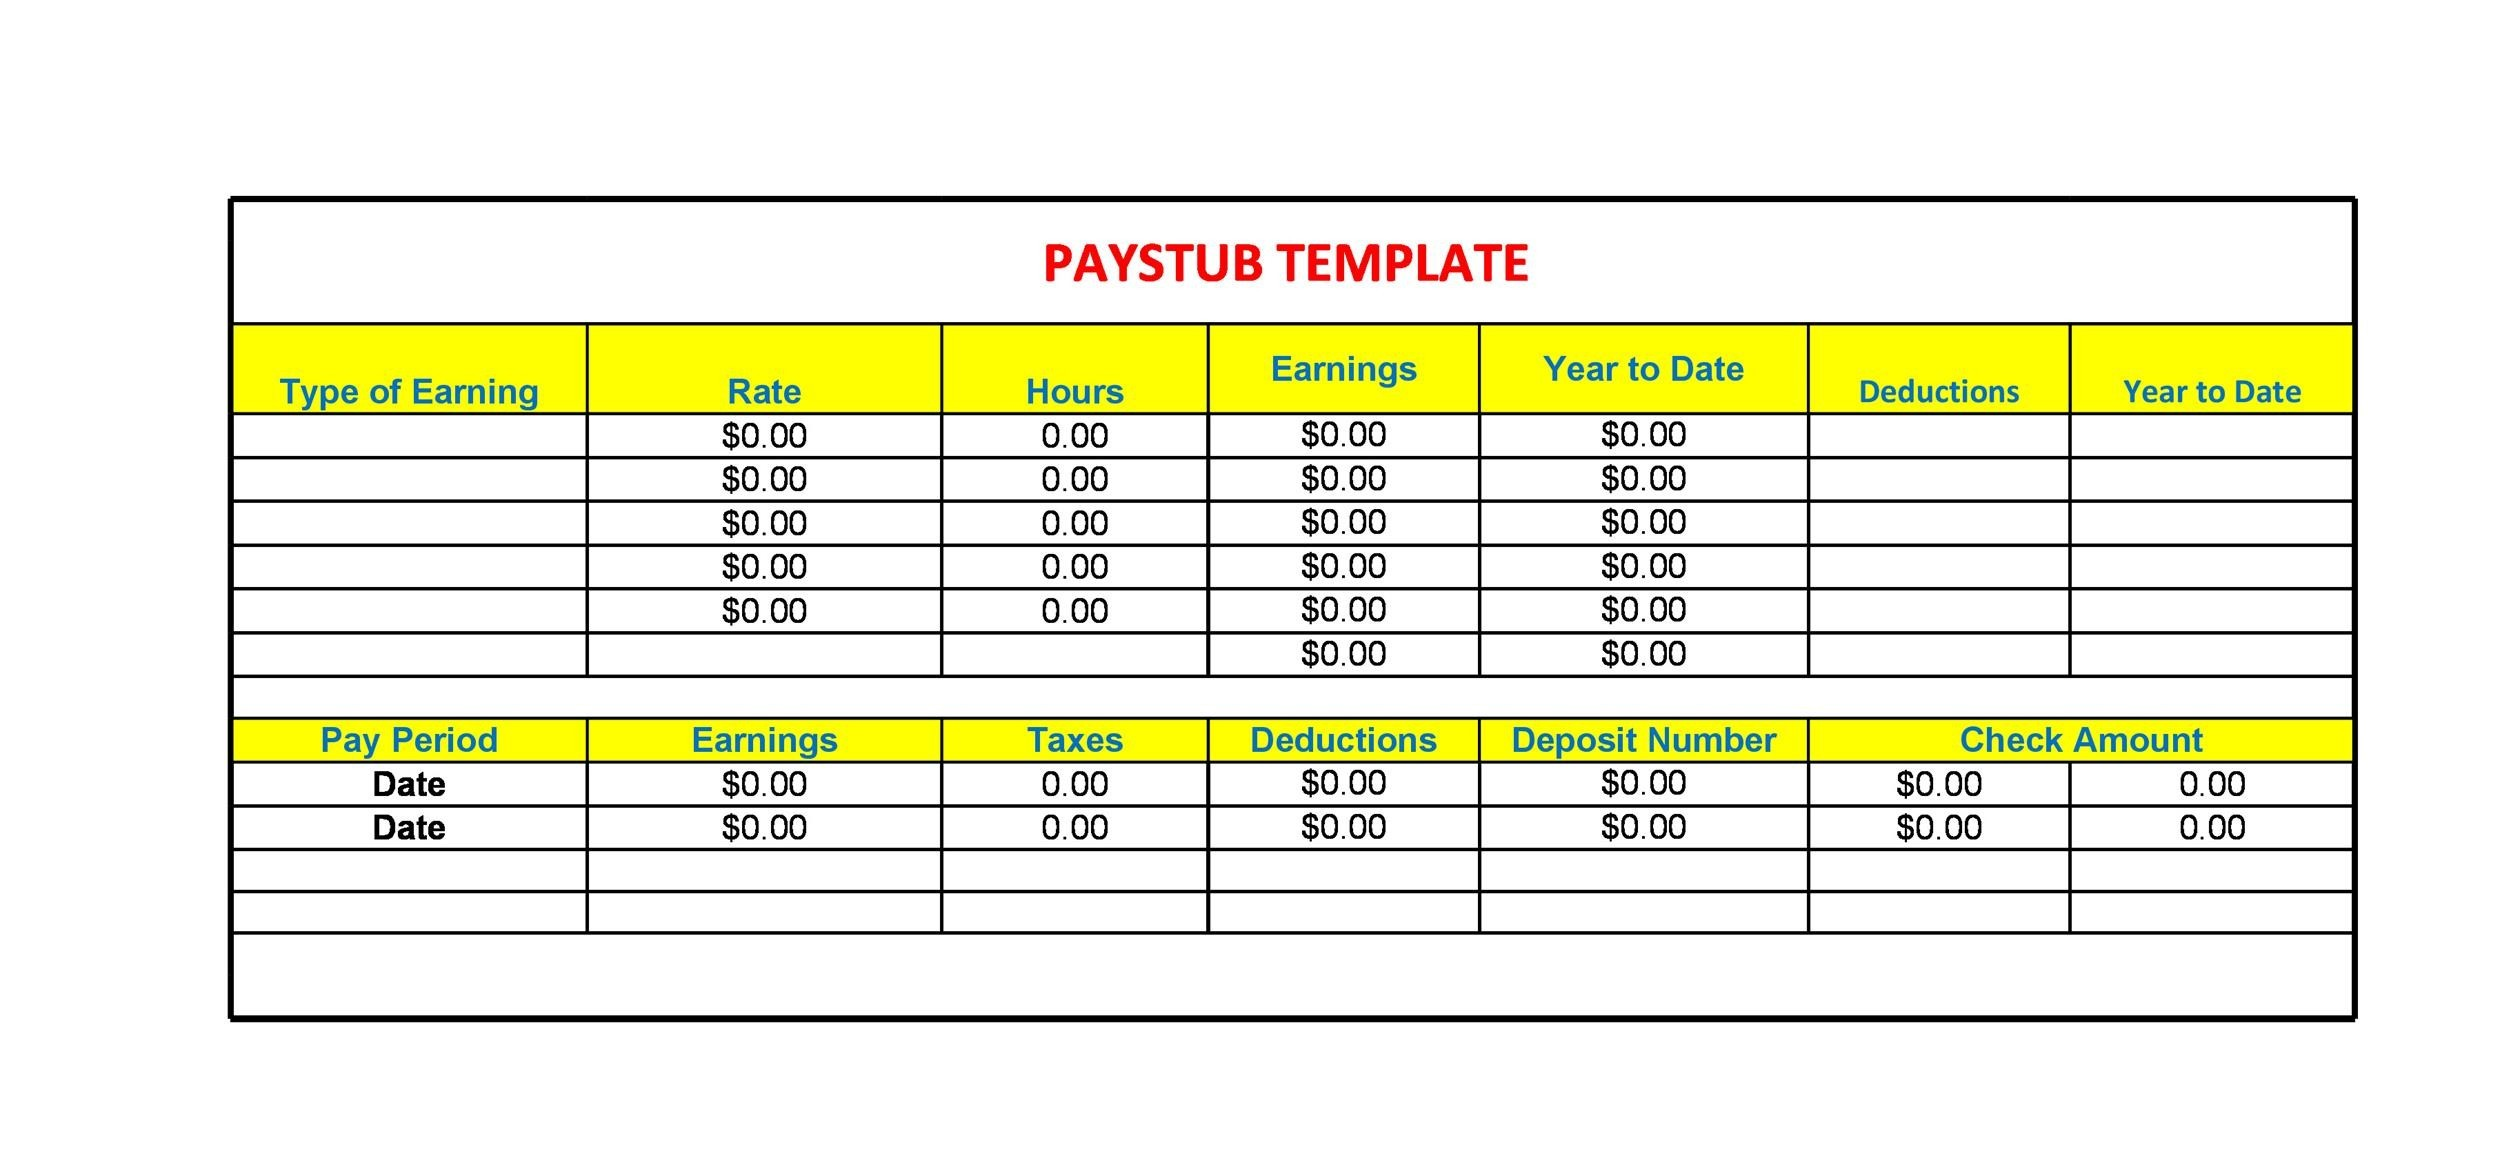 Great Pay Stub Paycheck Stub Templates - Free online check stub template